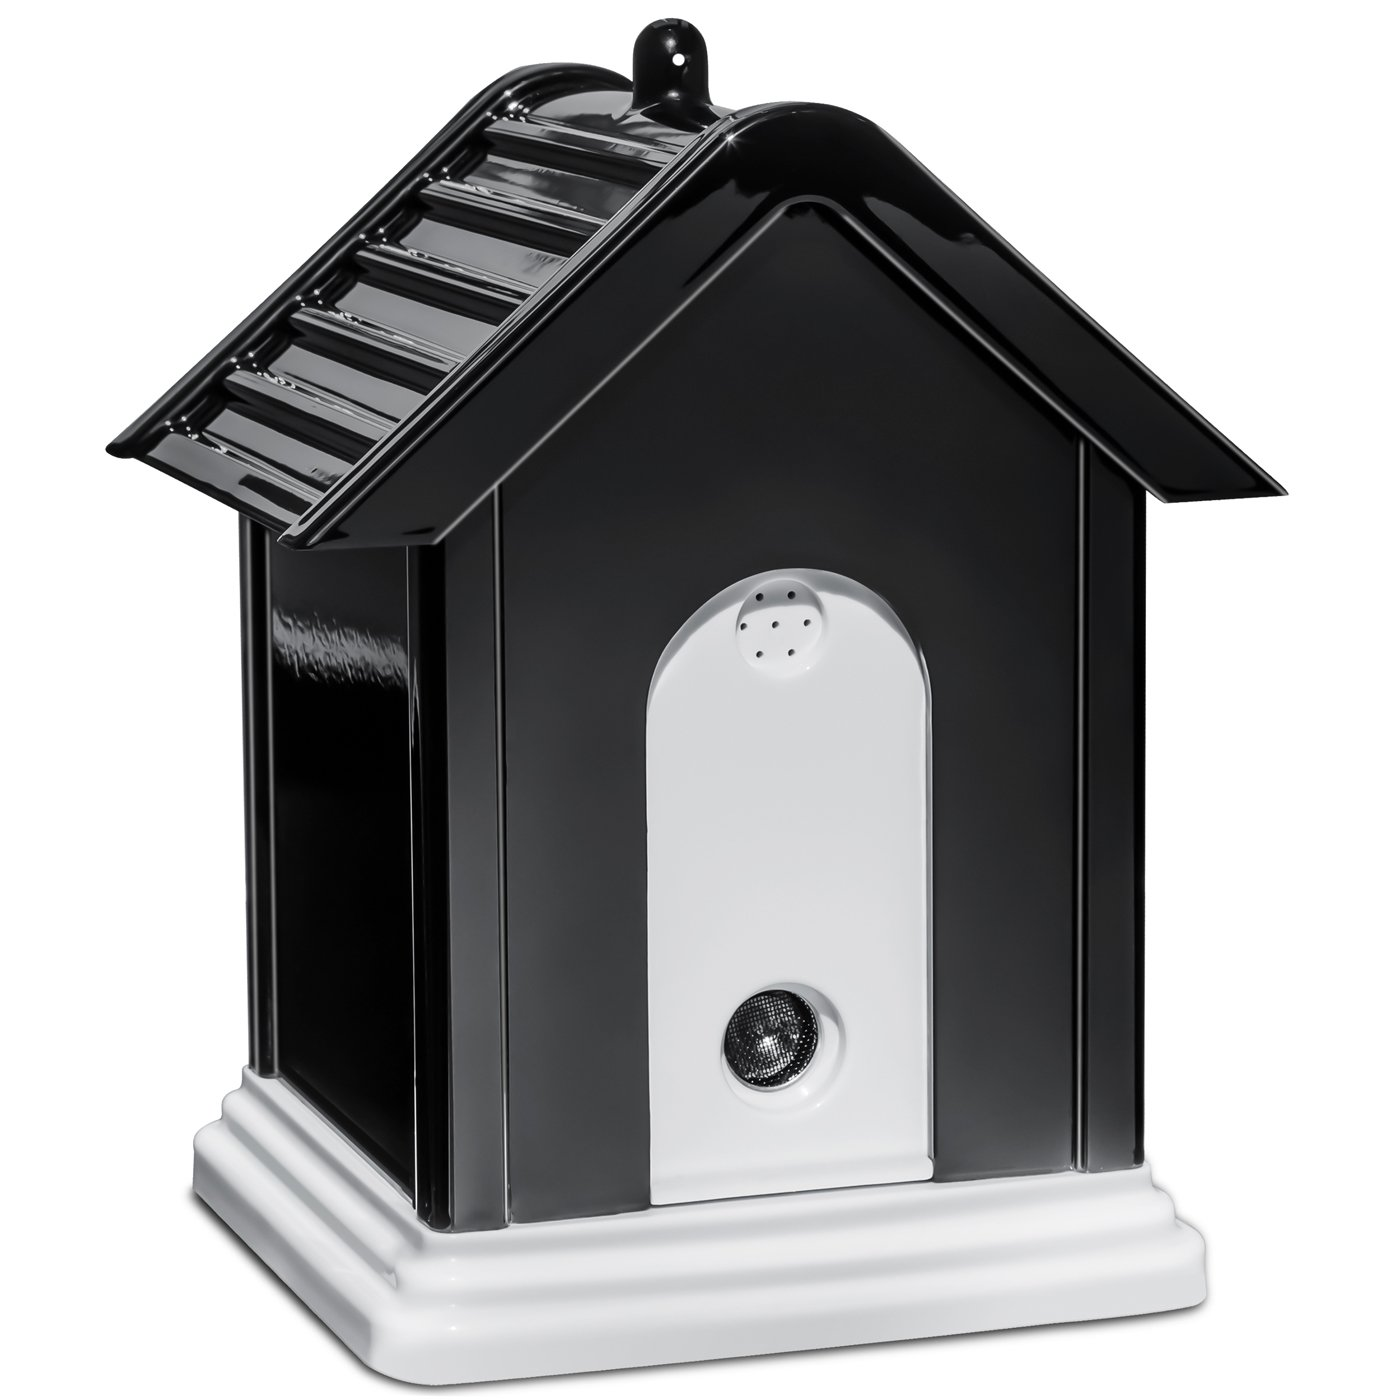 Paws & Pals OxGord Stop Dog Barking Ultrasonic Anti Bark Off Limiter Birdhouse Box Silencer Controller Device for Pets